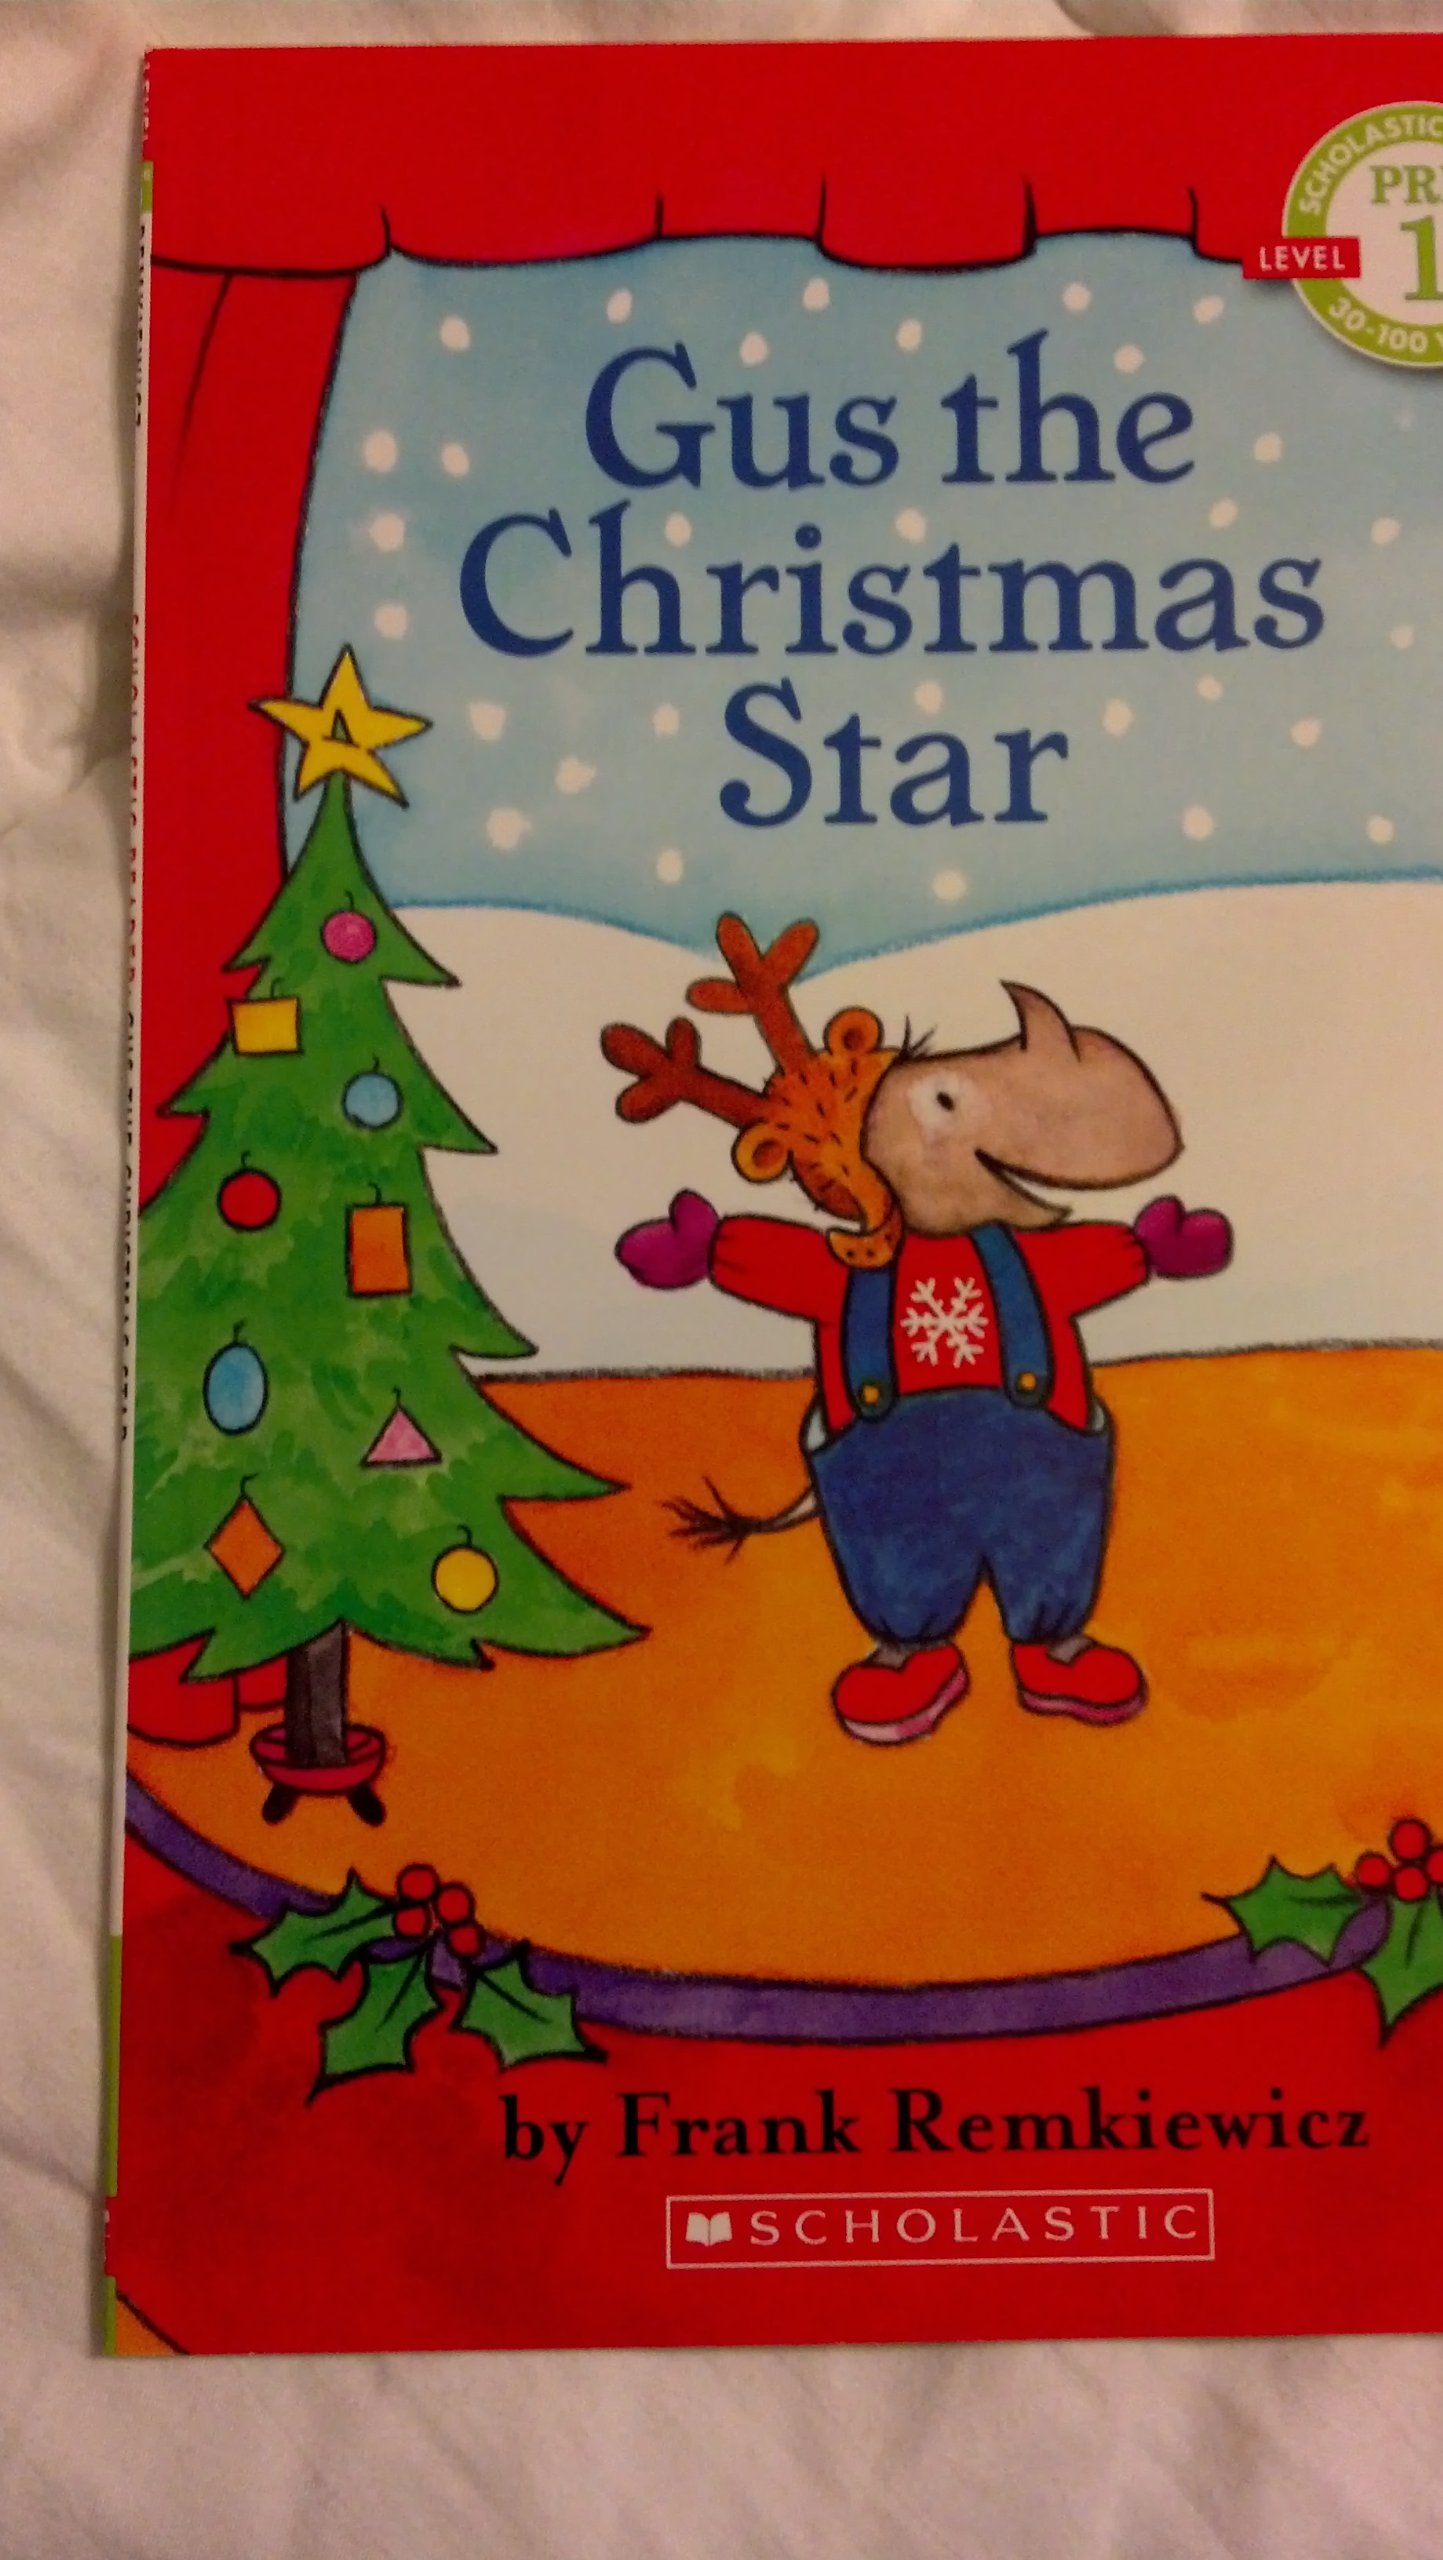 Download Gus the Christmas Star - Pre 1 Level Reader PDF